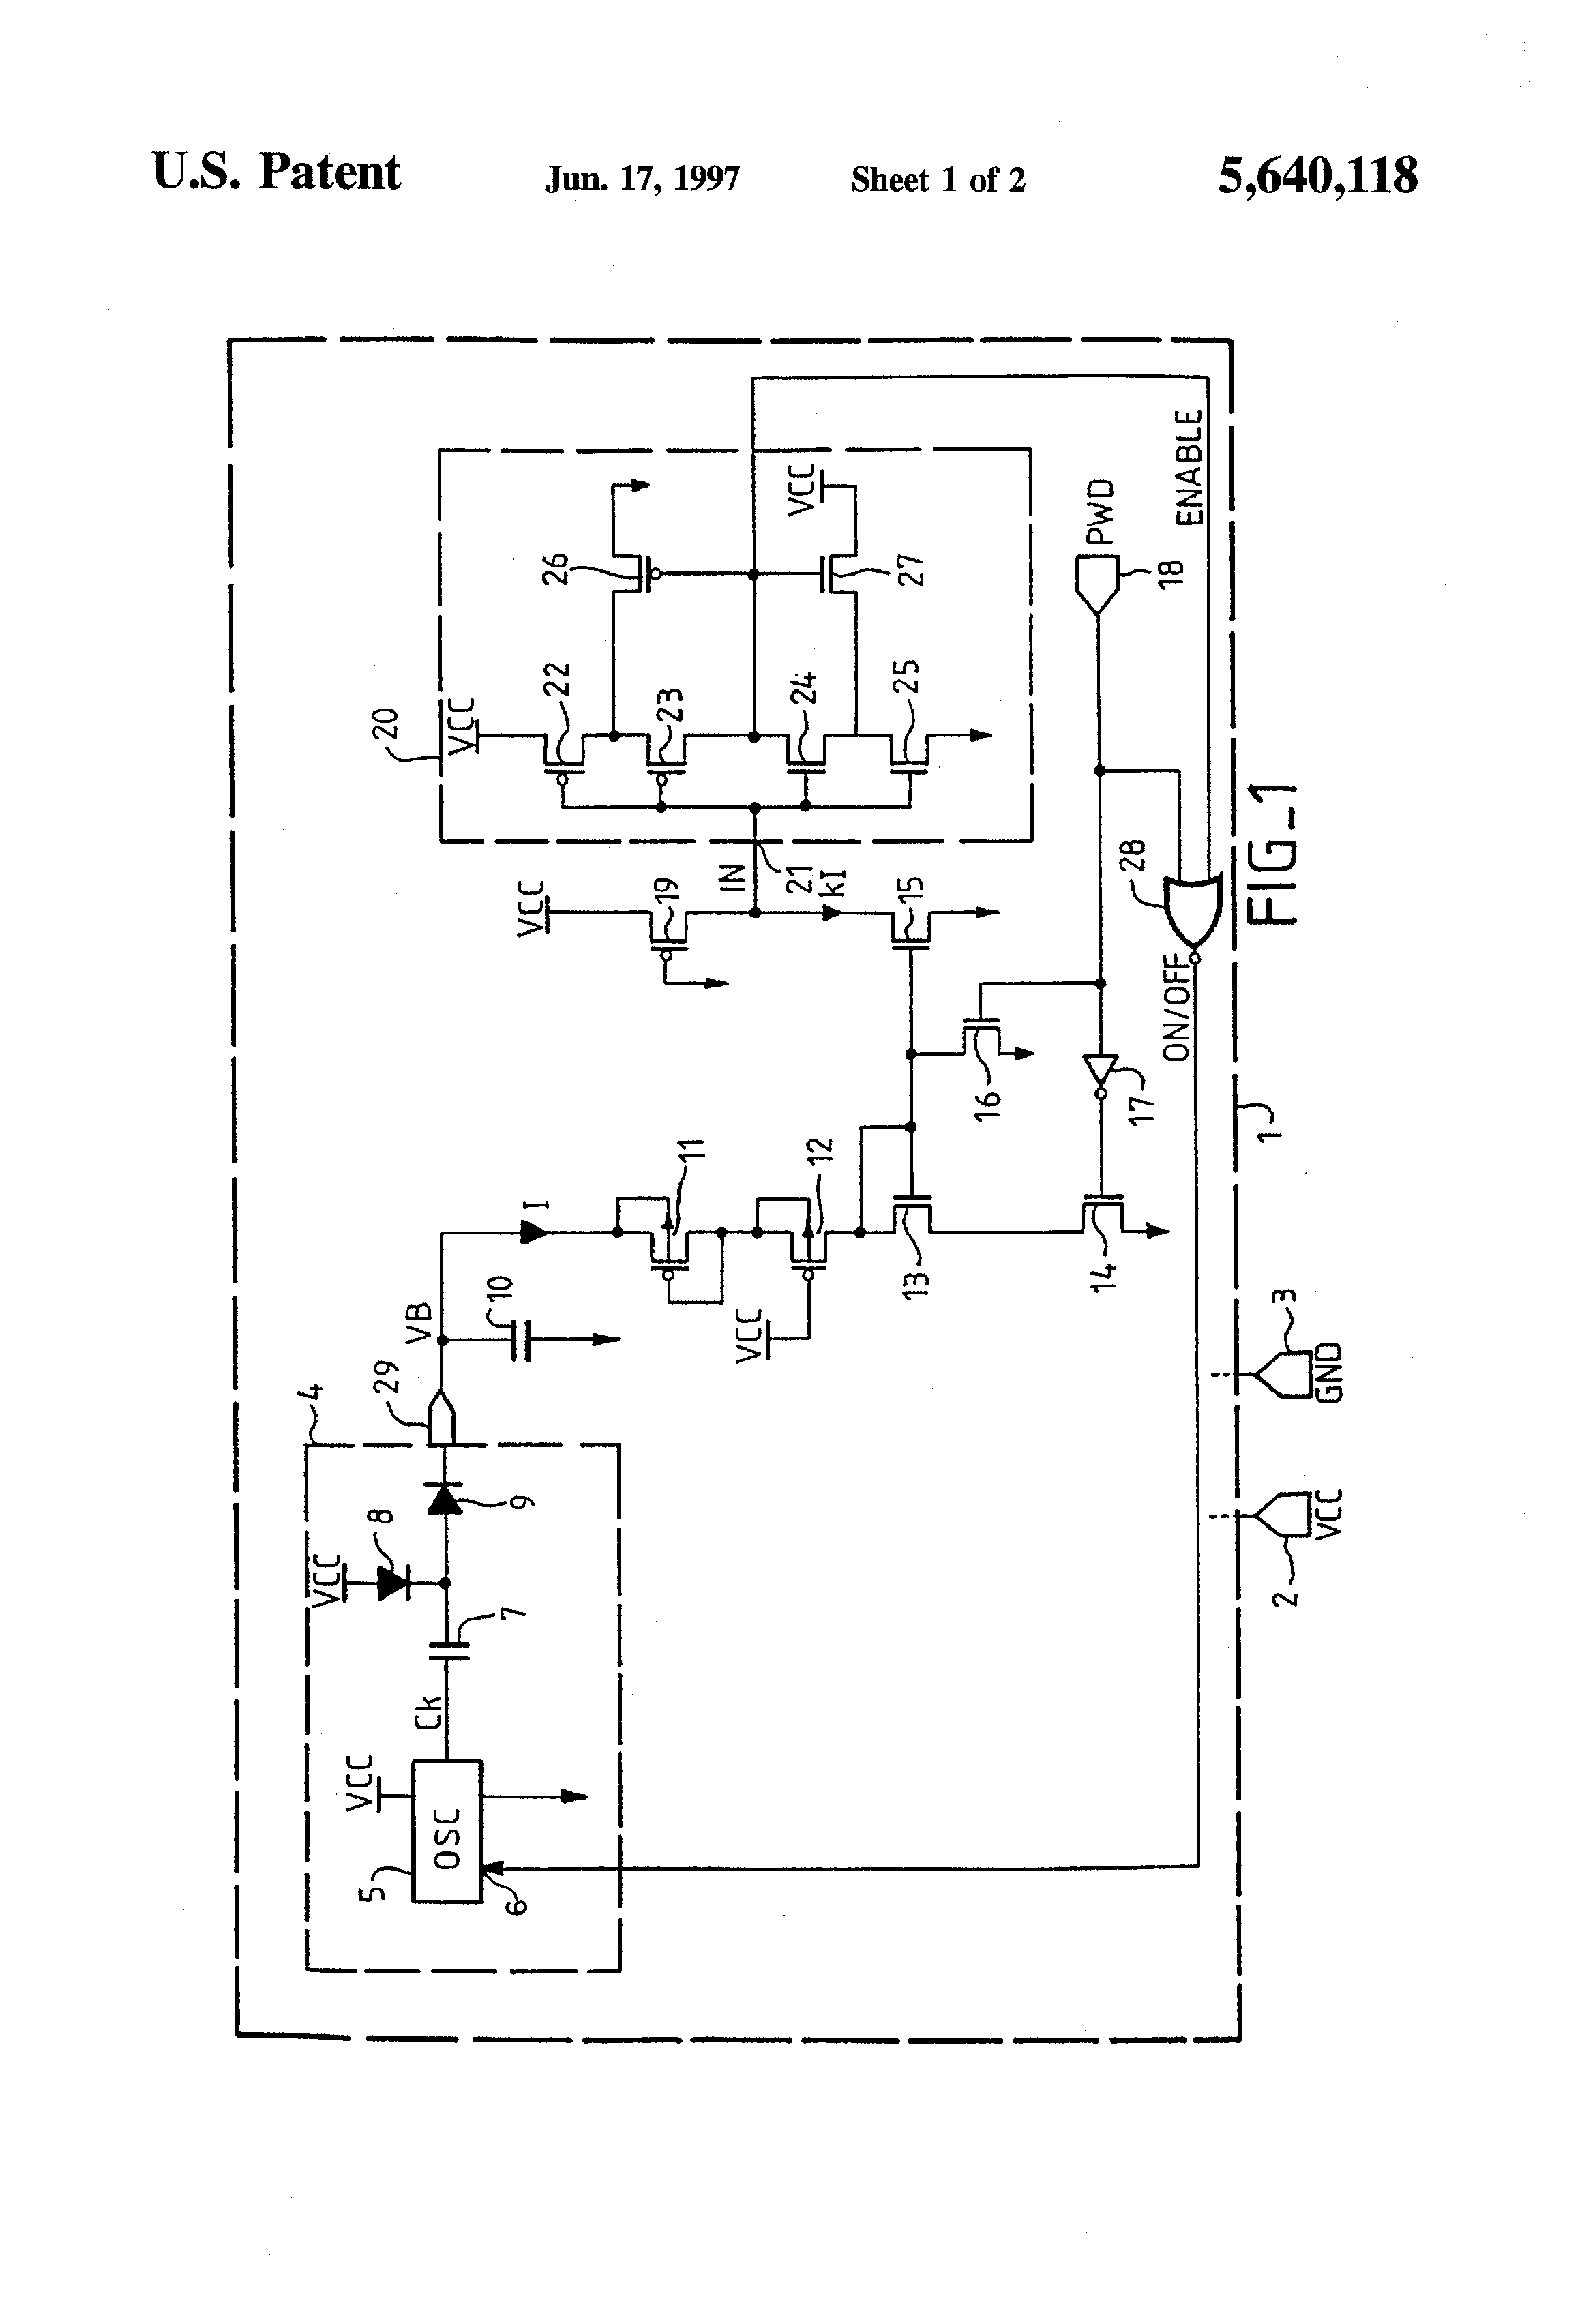 Patent Us5640118 Voltage Limiting Circuit With Hysteresis Comparator Circuits Design Tool Drawing